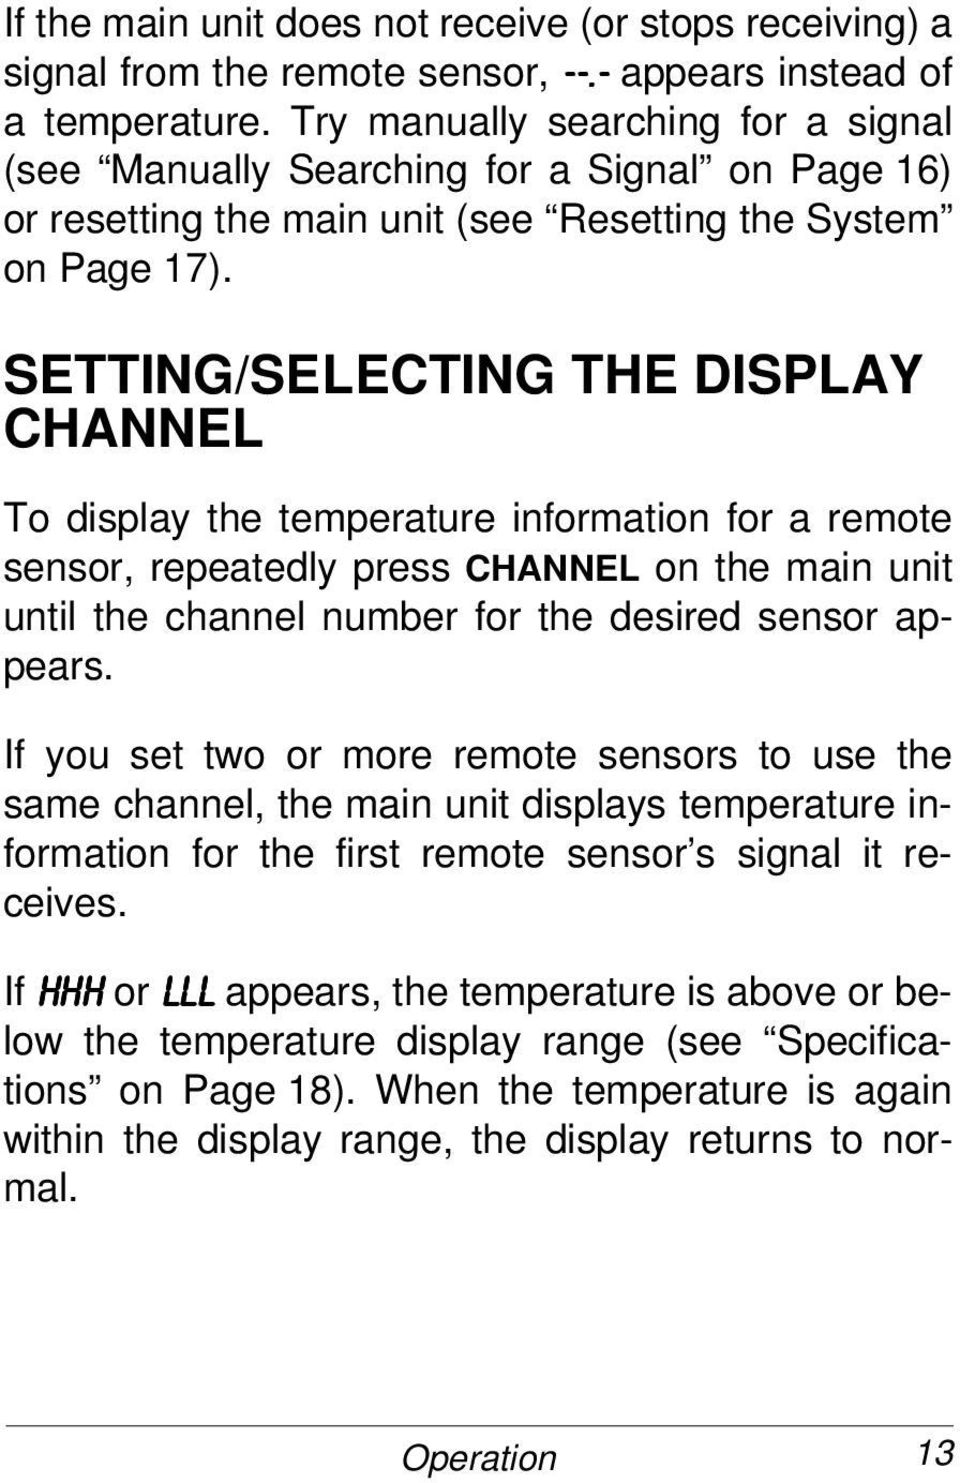 SETTING/SELECTING THE DISPLAY CHANNEL To display the temperature information for a remote sensor, repeatedly press CHANNEL on the main unit until the channel number for the desired sensor appears.